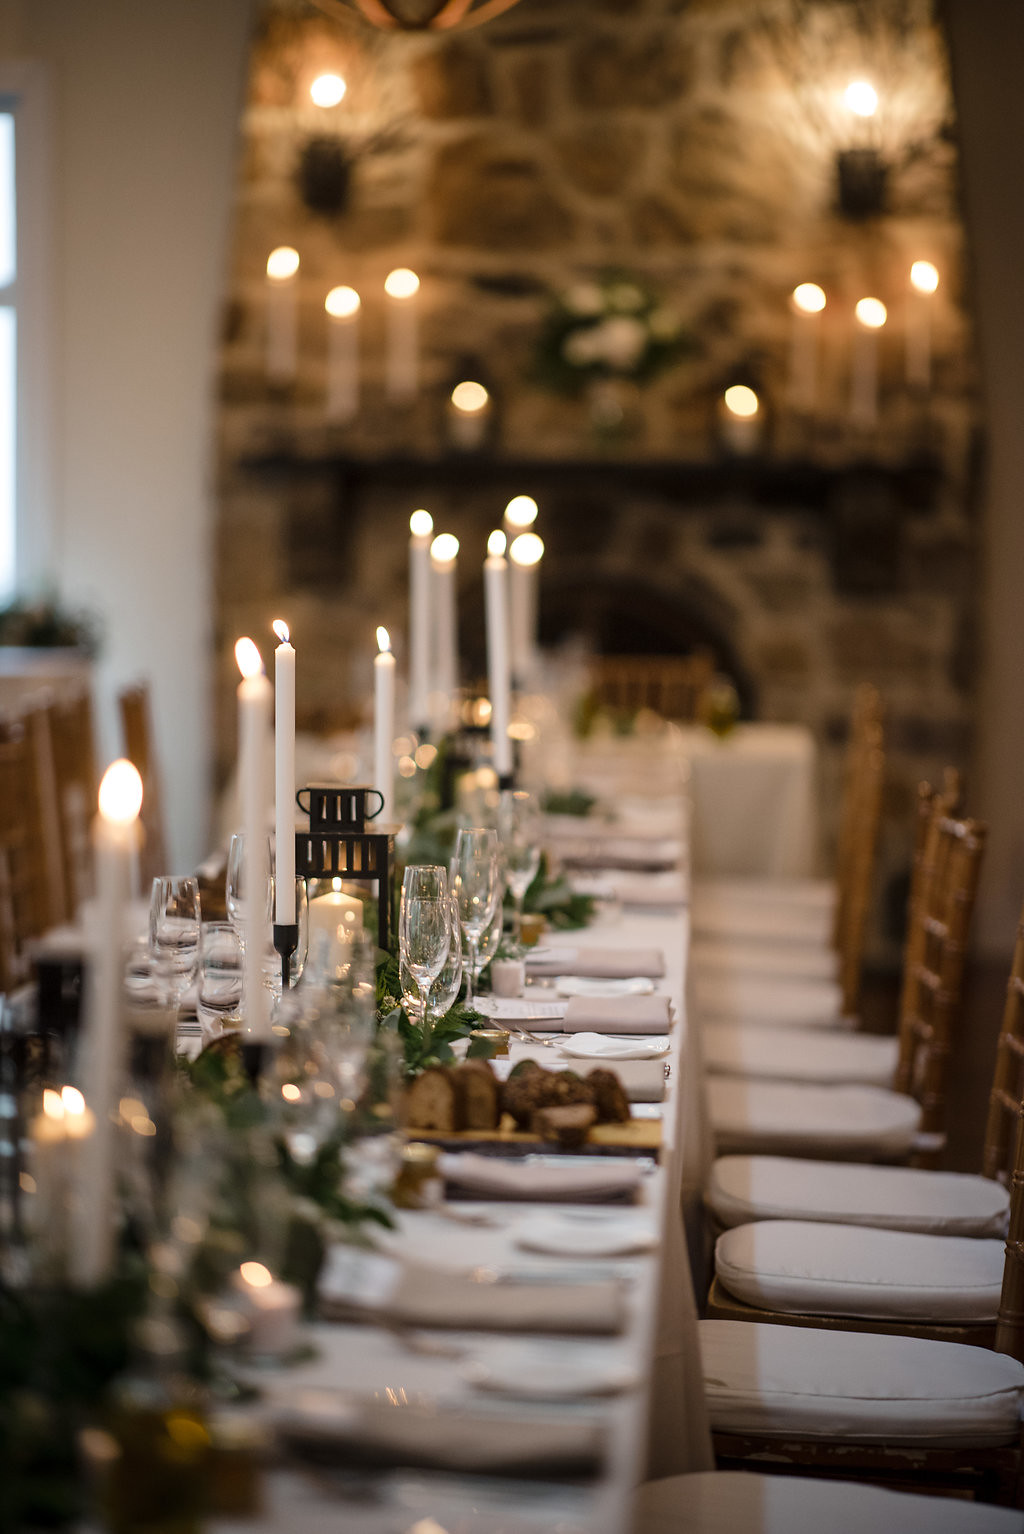 Long communal table with greenery and candle sticks.